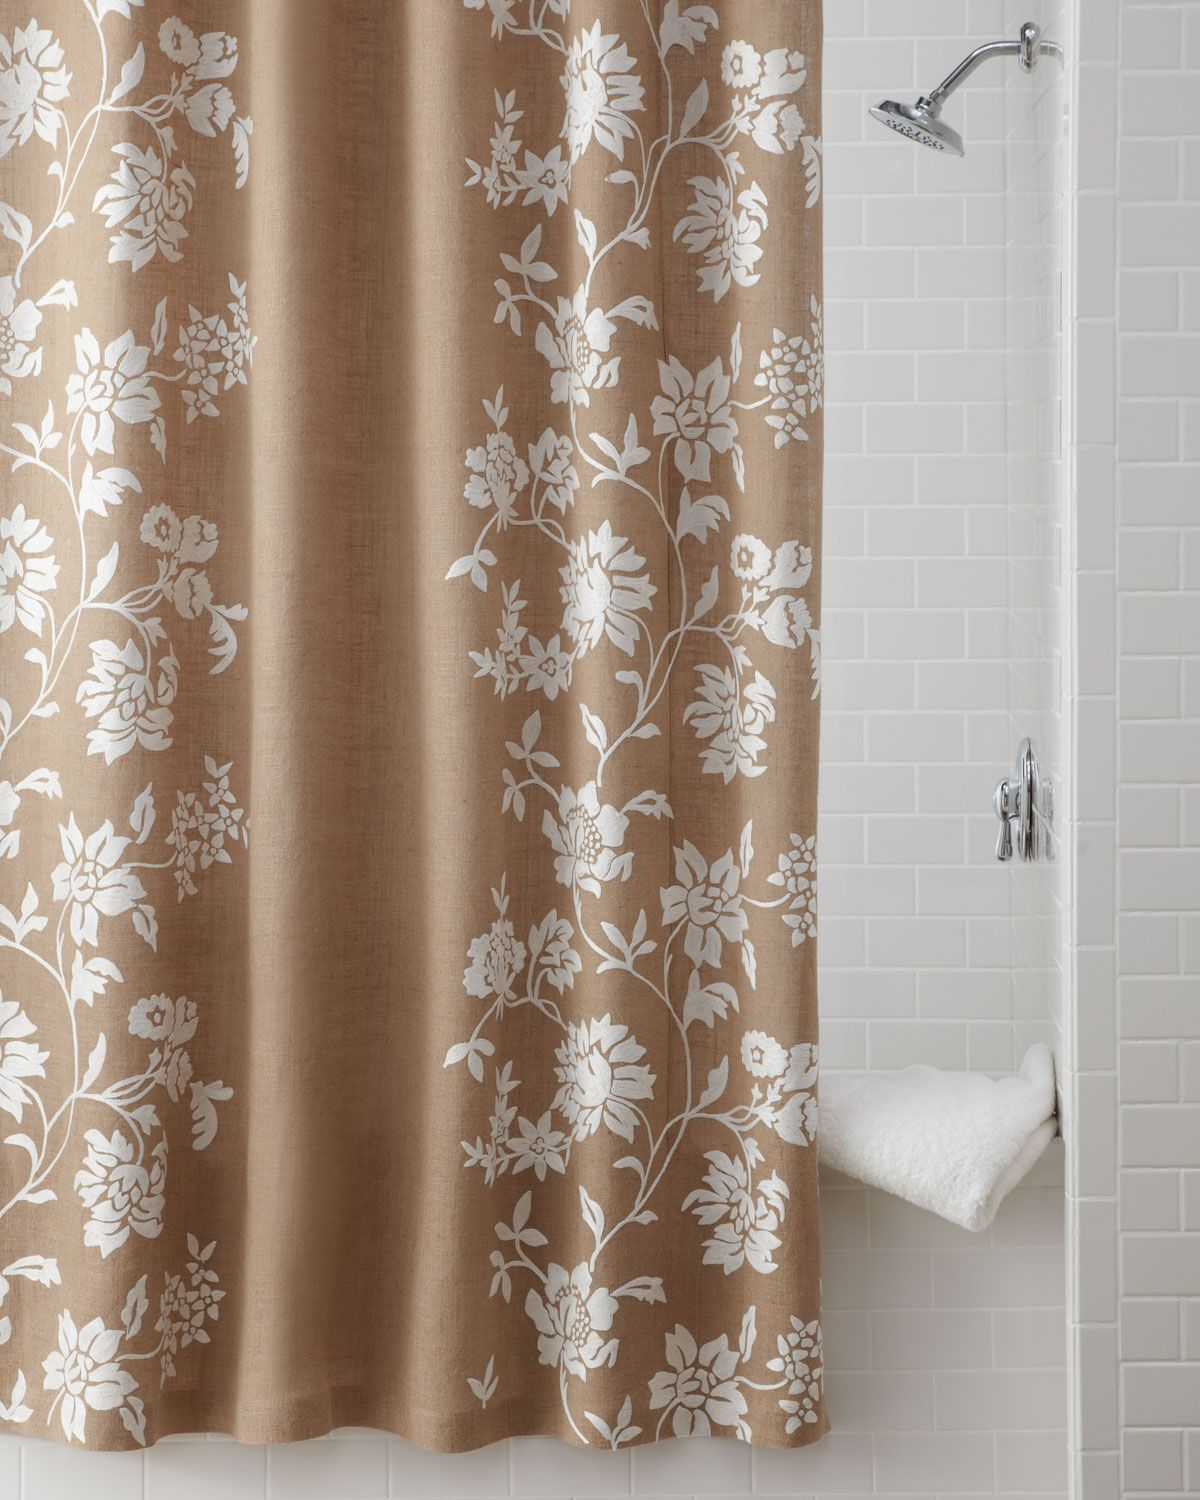 Burlap And Lace Curtains   Google Search